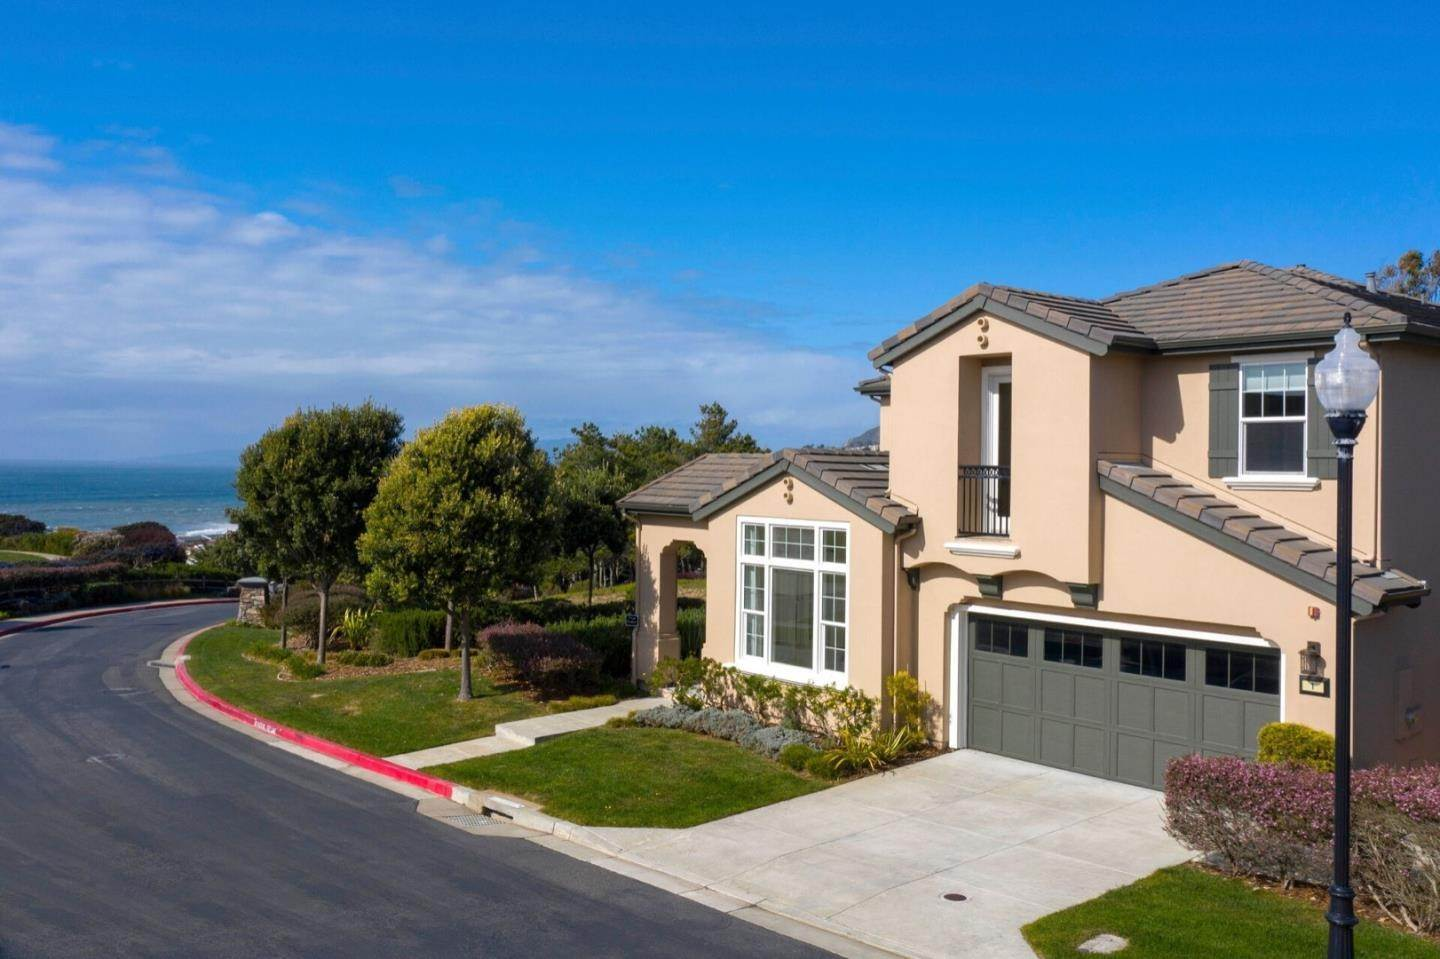 Property for Sale at 1 Connemara Drive Pacifica, California 94044 United States